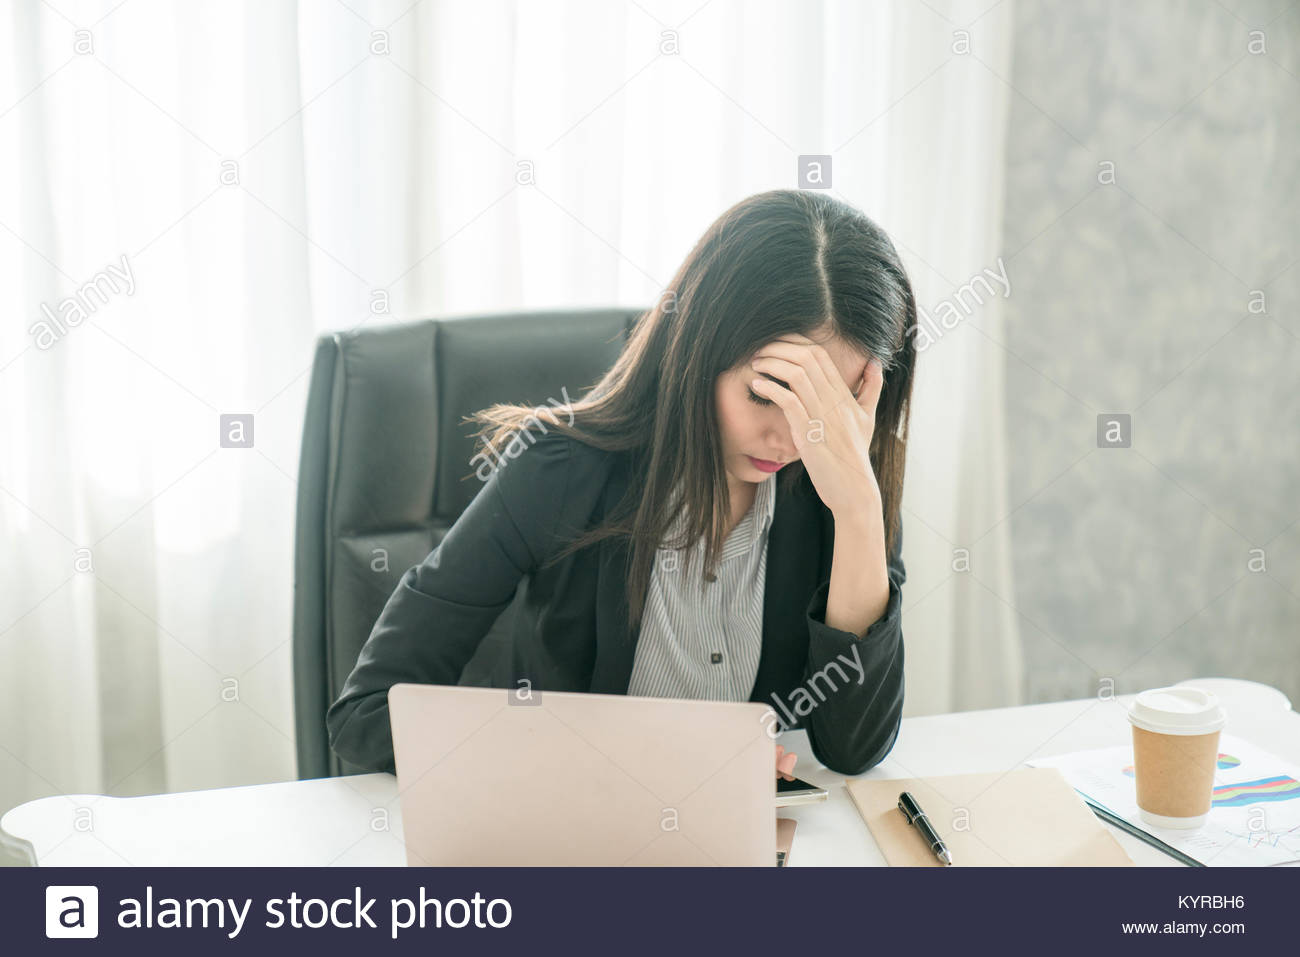 Feeling tired and stressed A young woman while sitting at her workplace at work. - Stock Image